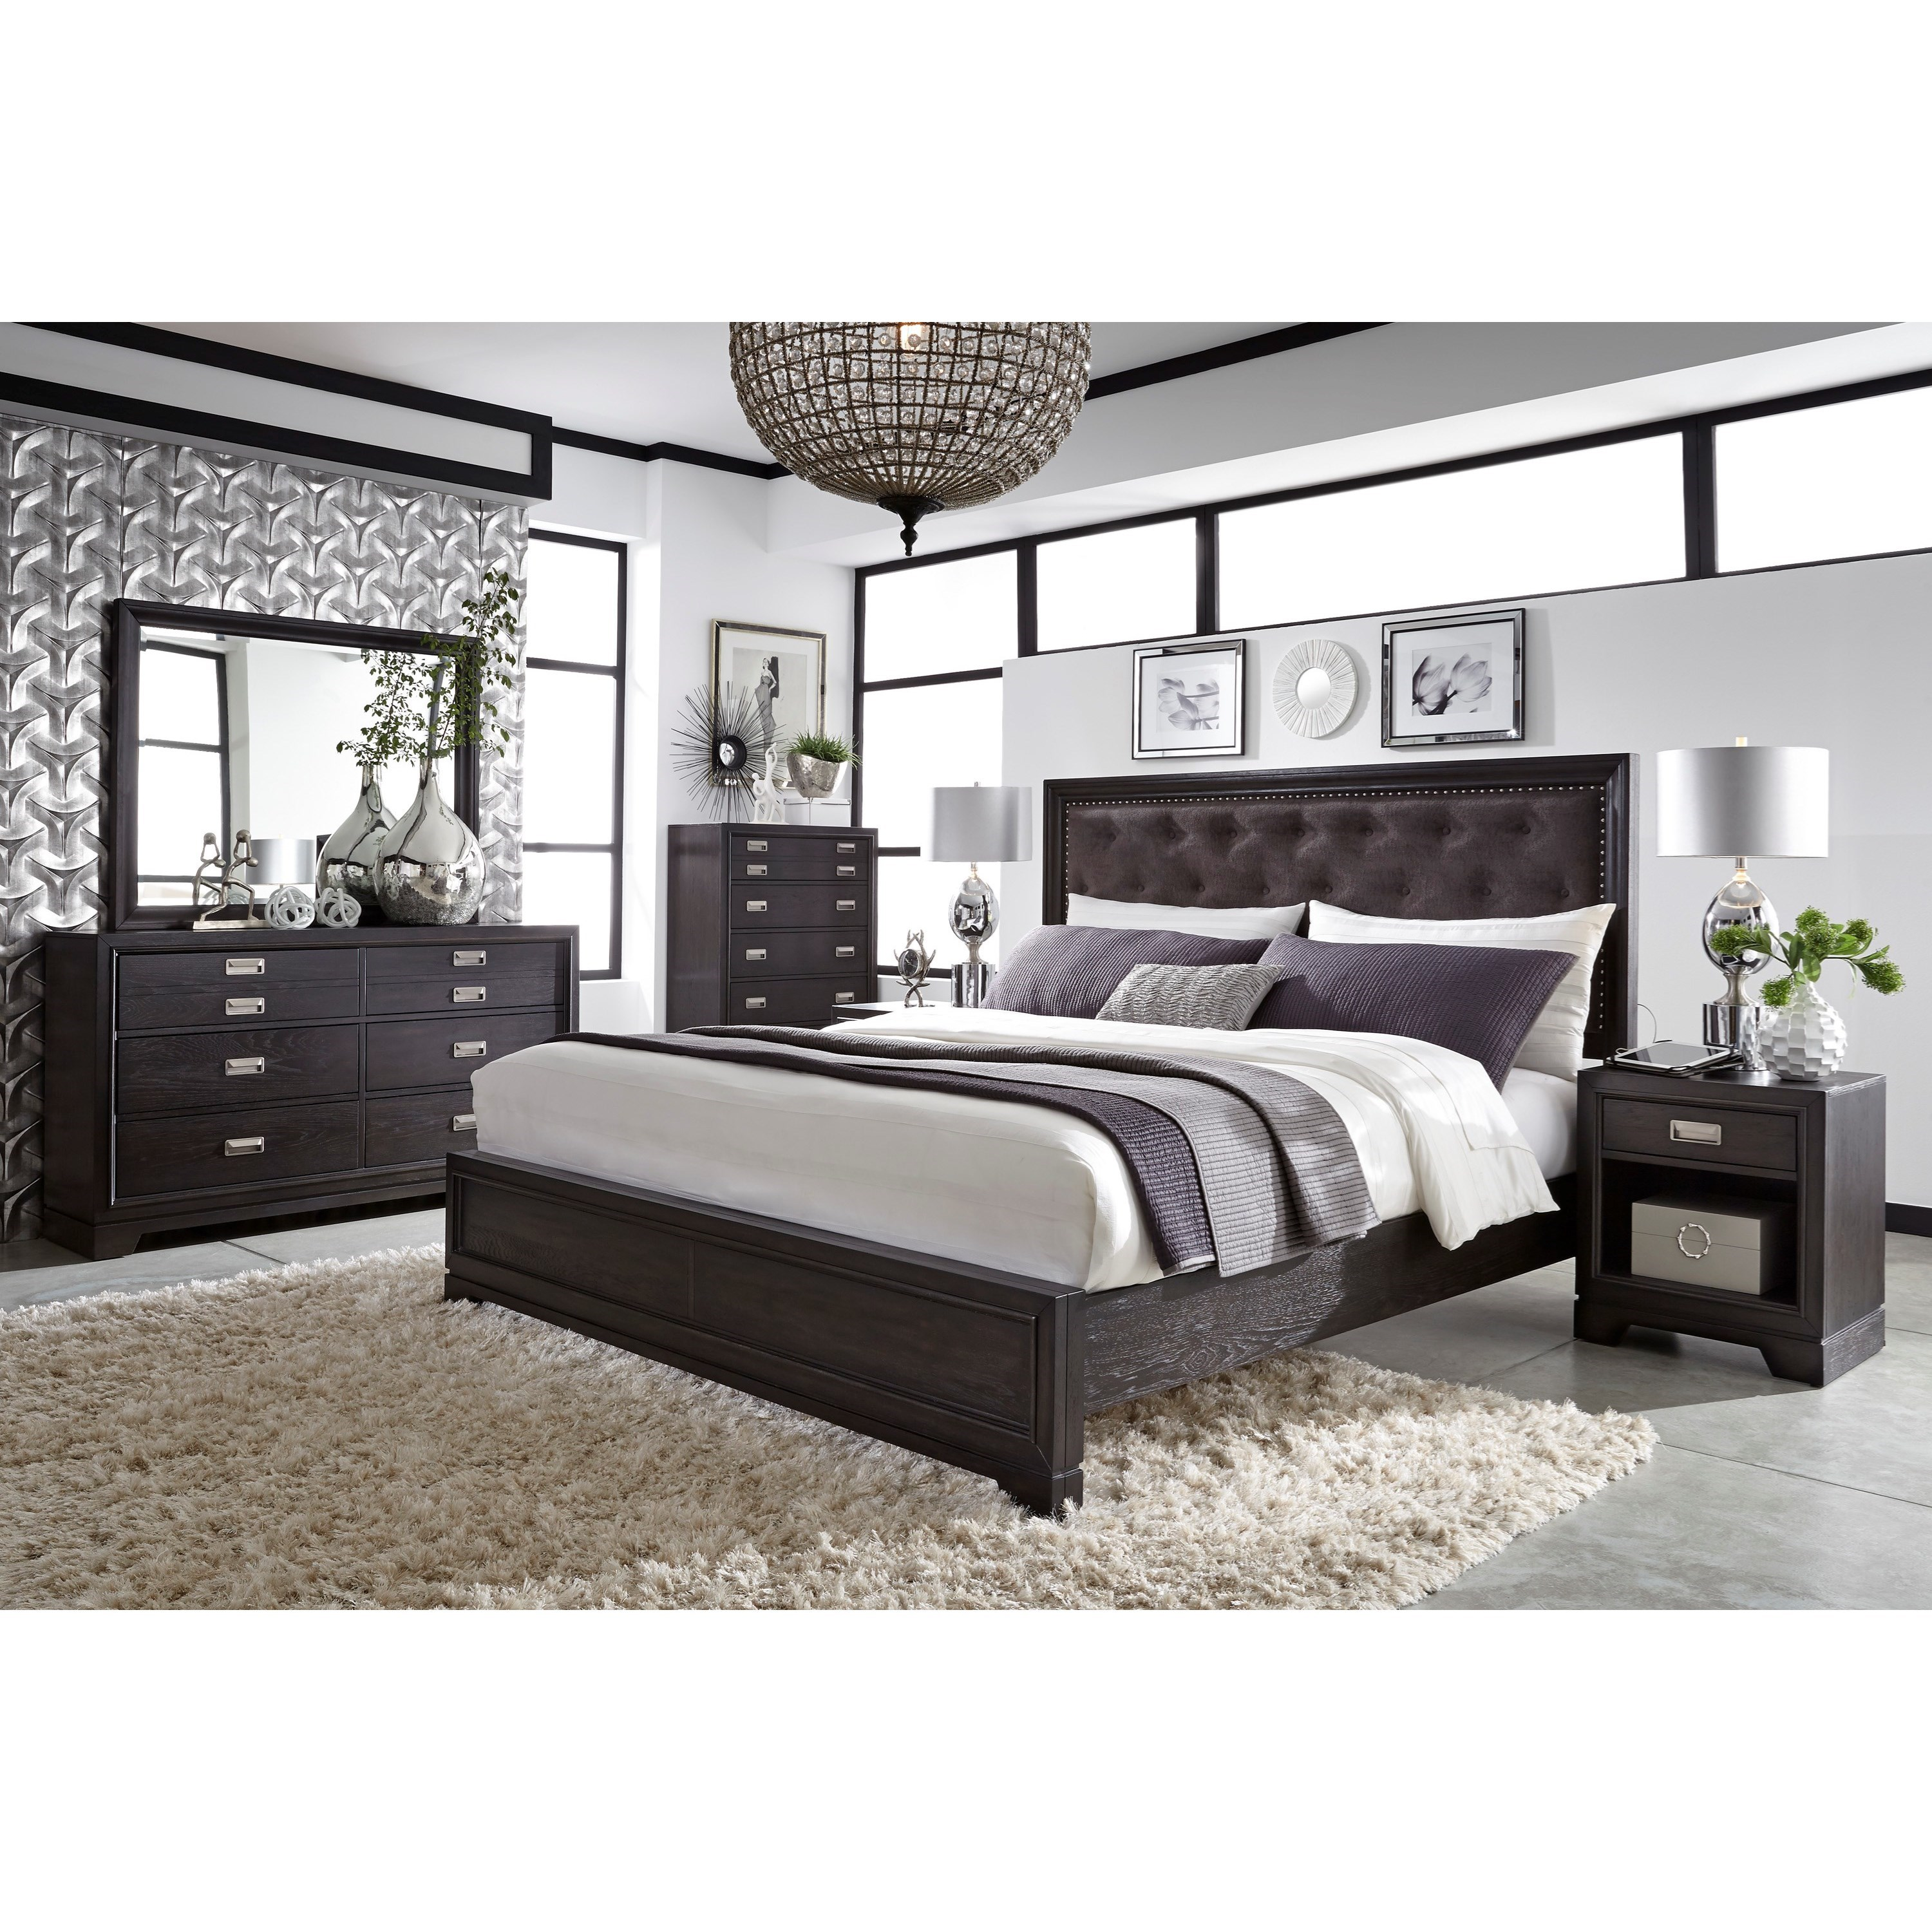 Front Street Queen Bedroom Group by Hills of Aspen at Ruby Gordon Home